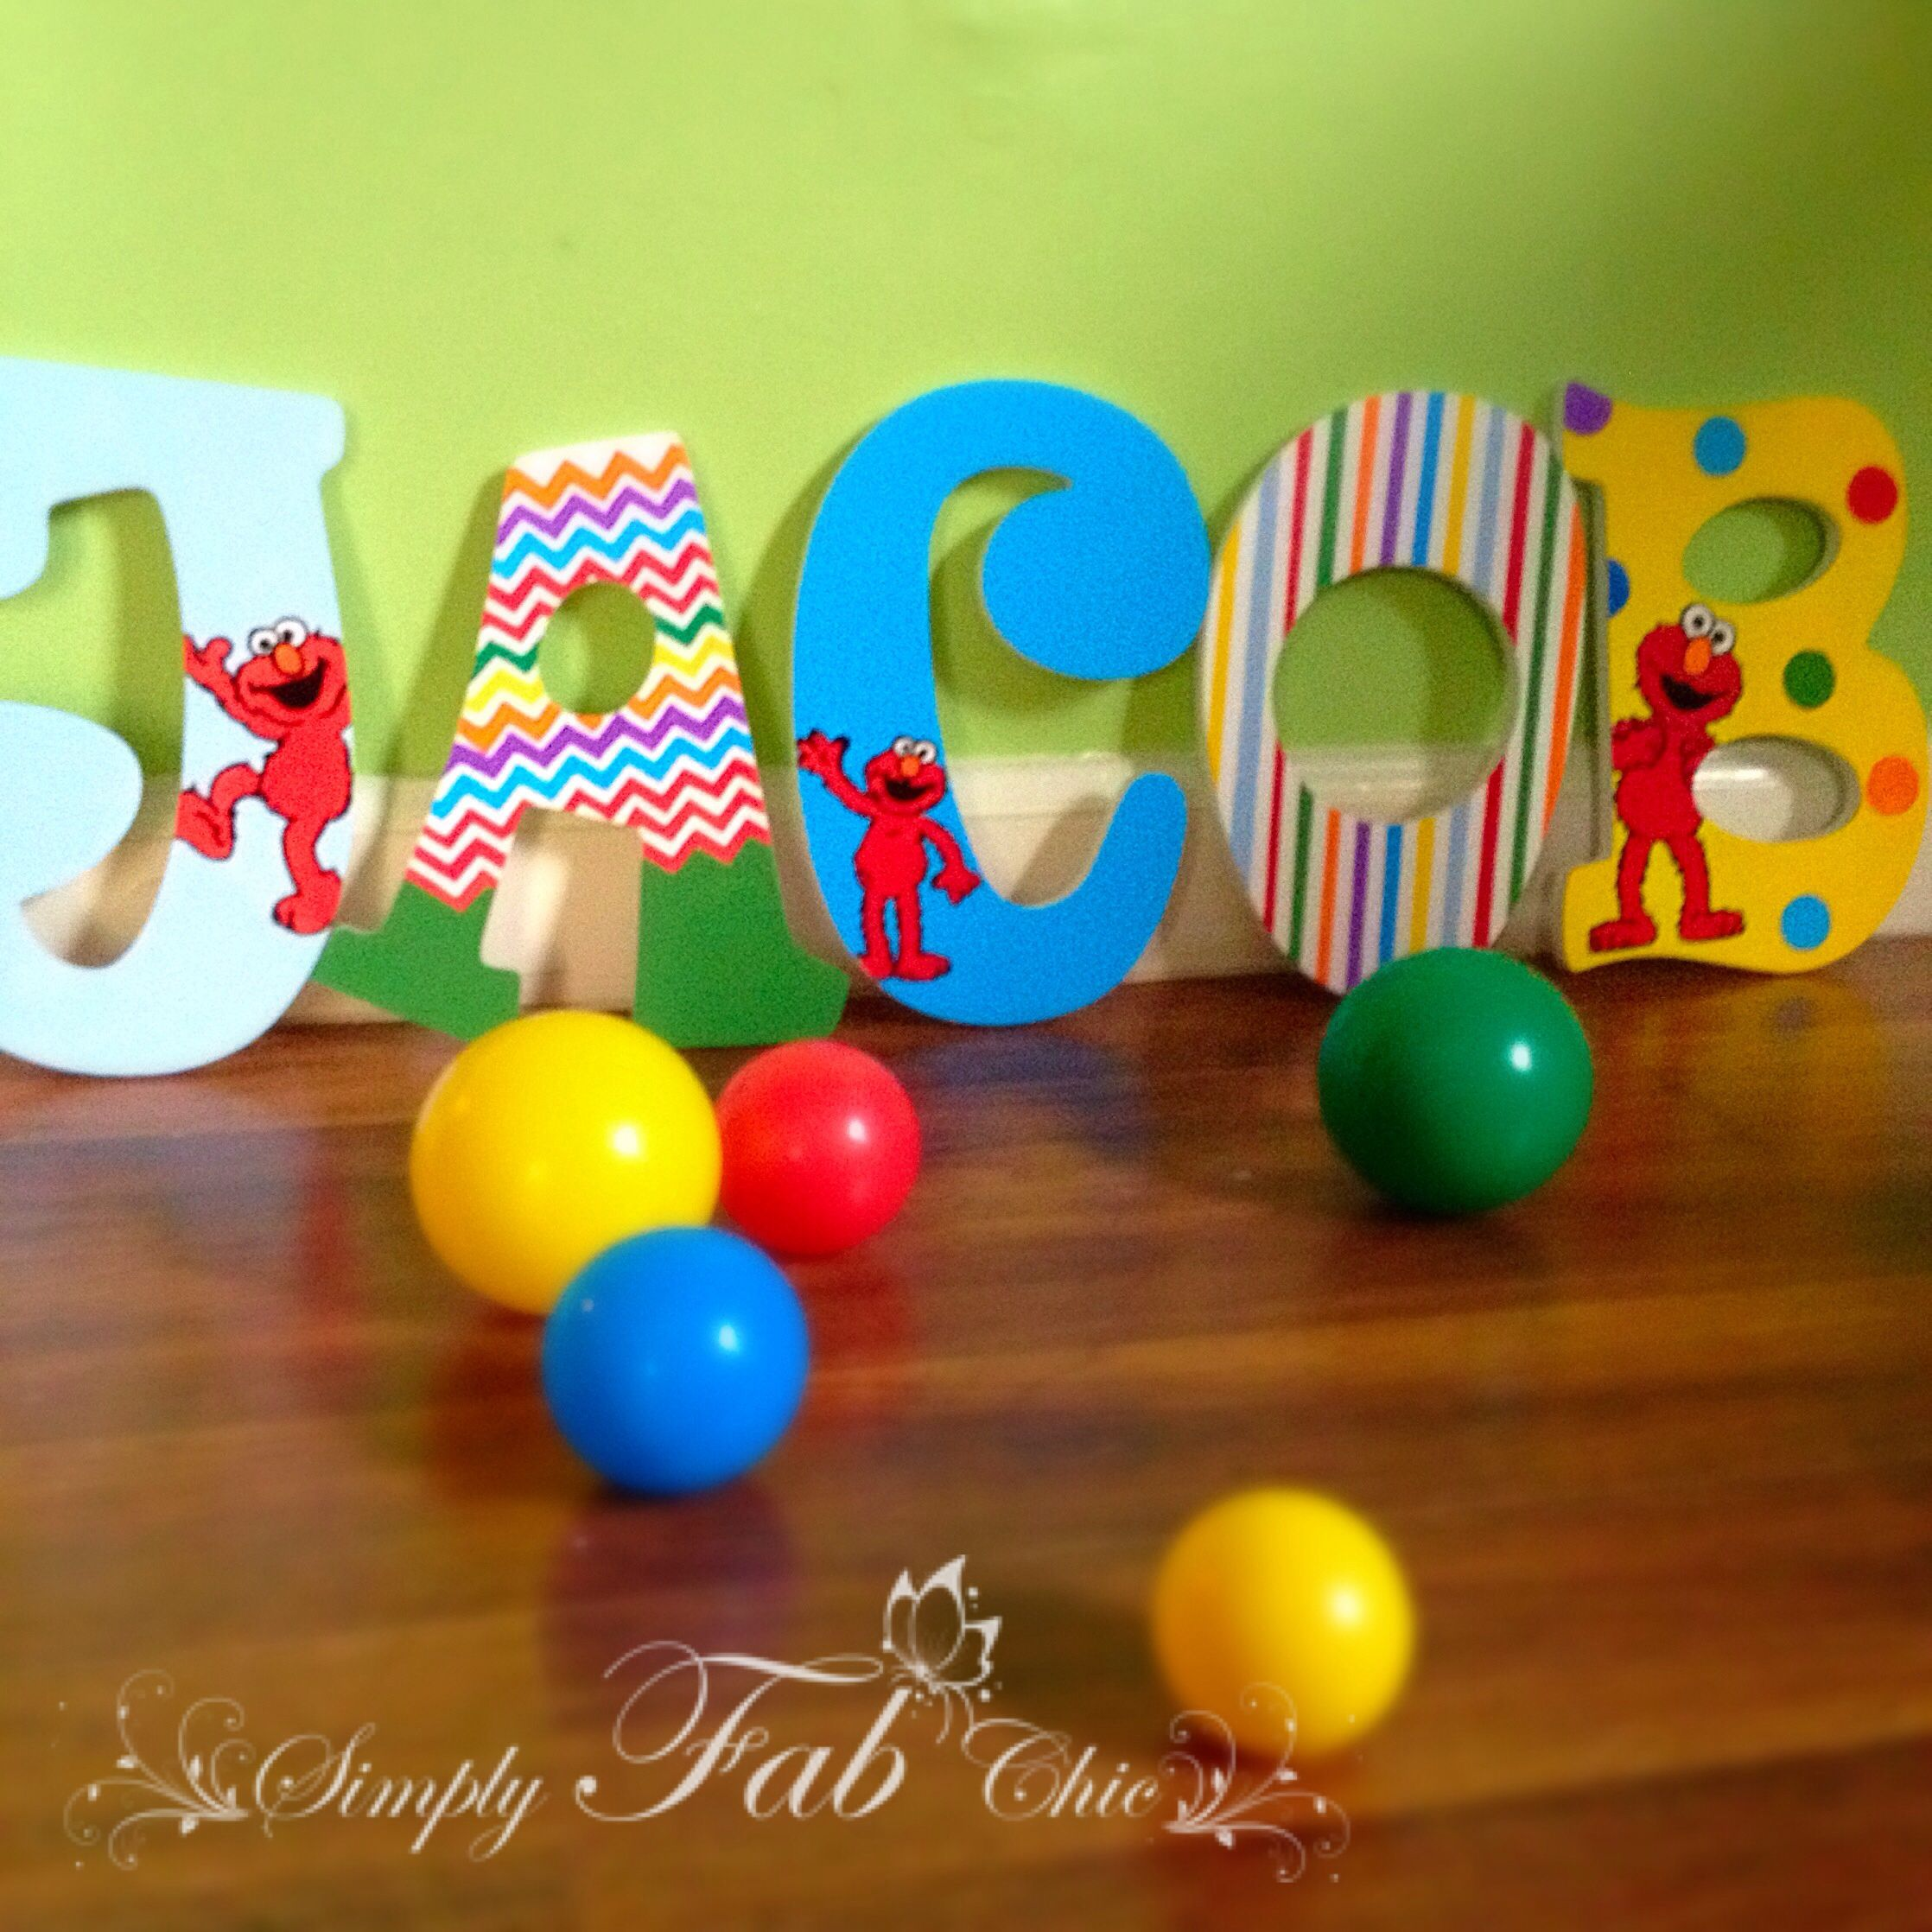 Elmo Sesame Street Personalized Wooden Letter for a birthday or